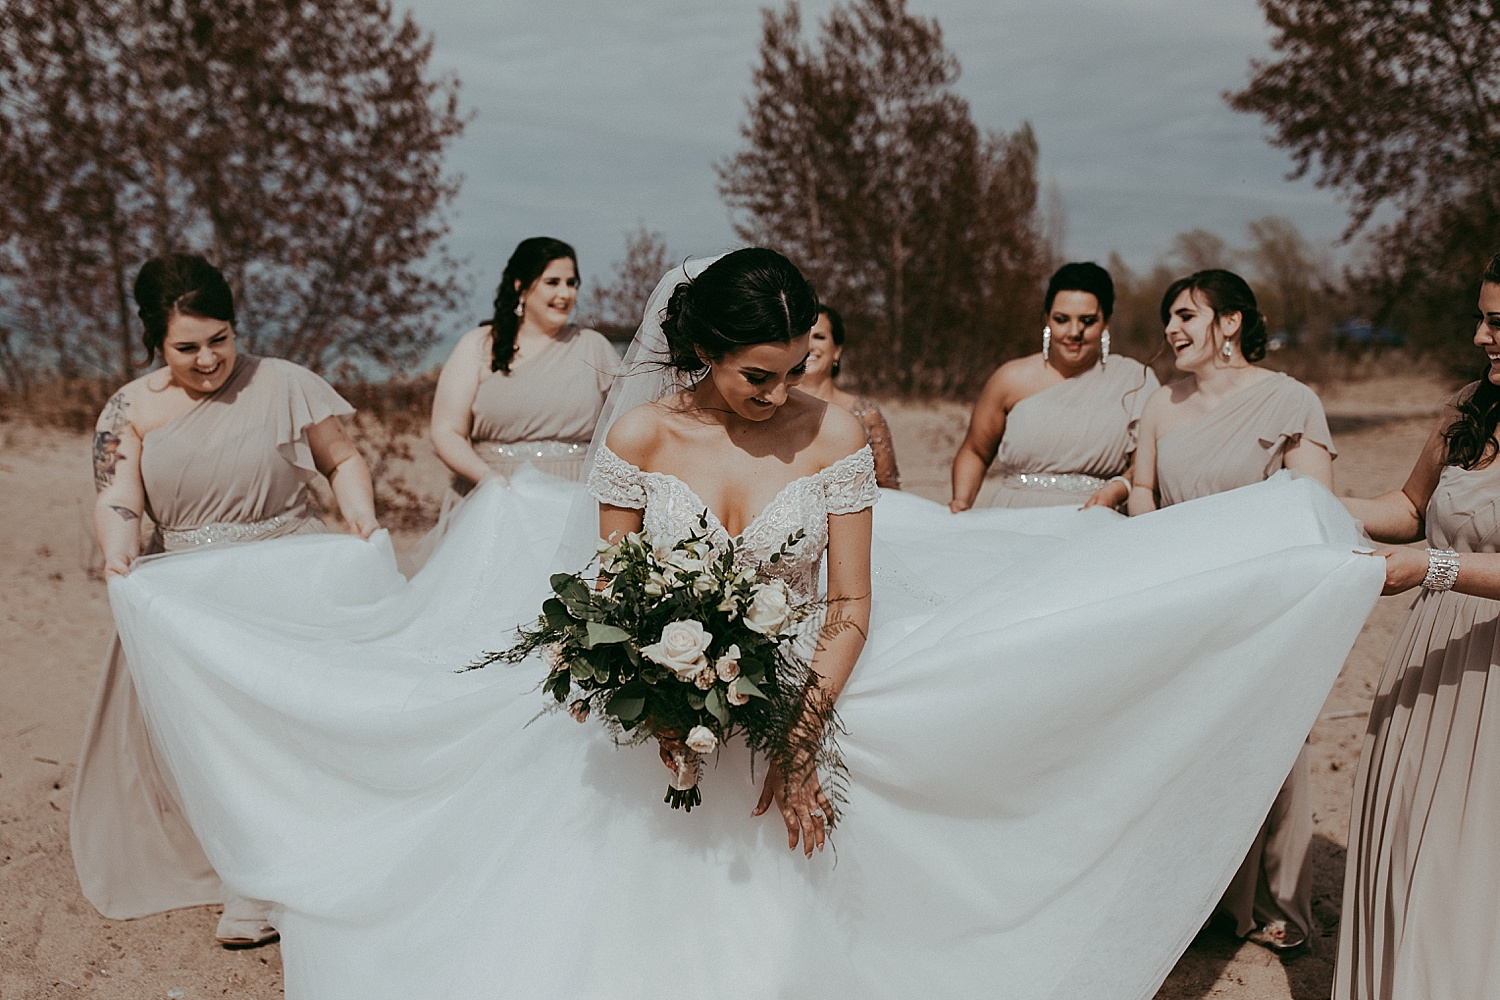 bridesmaids holding the bride's dress, wedding photography